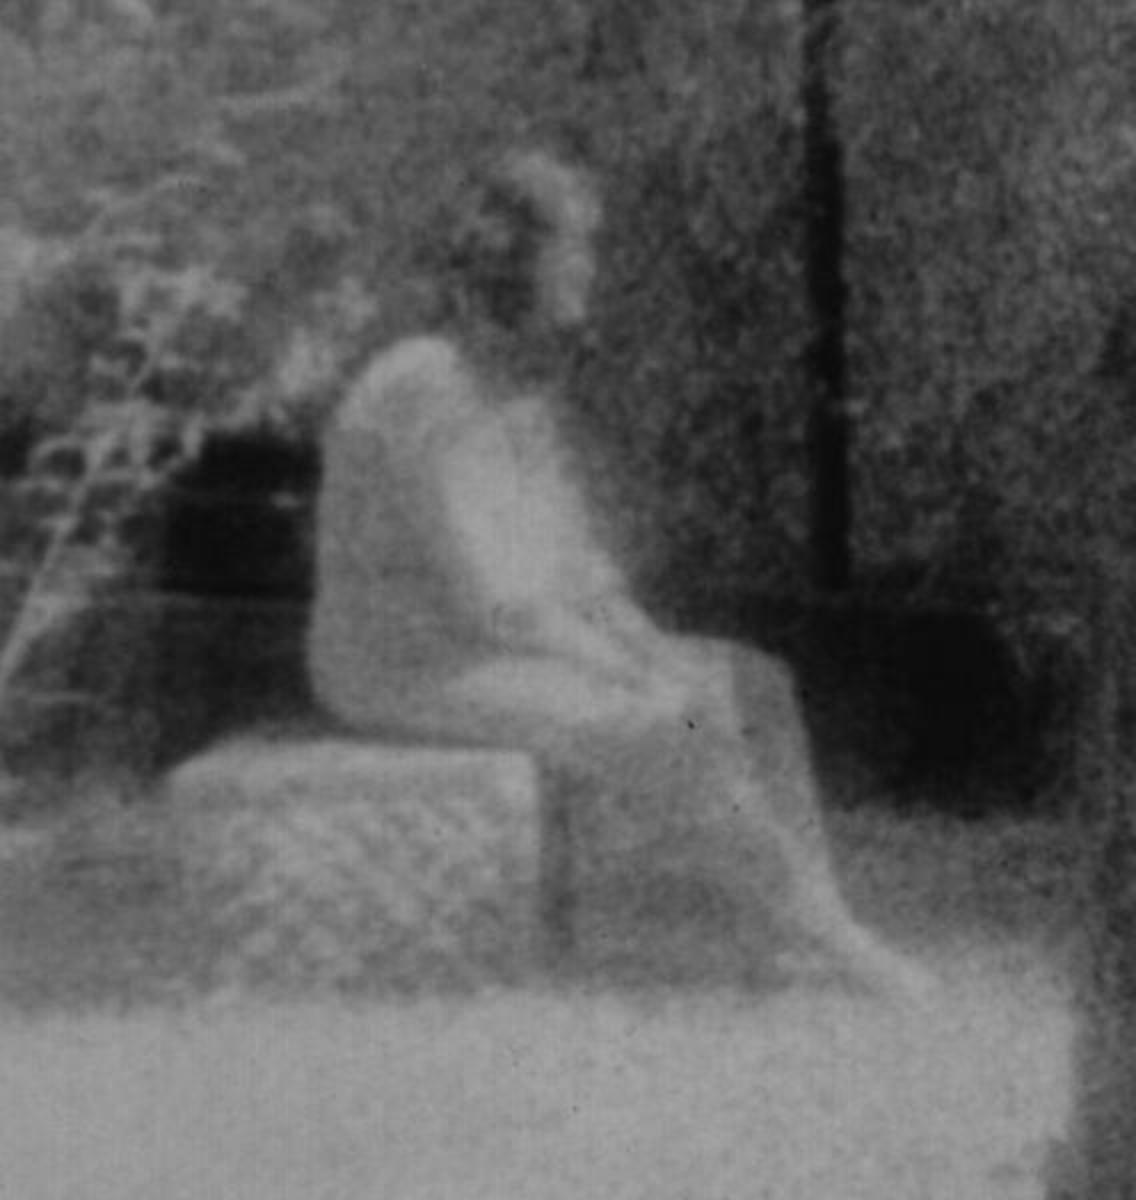 Image of the supposed ghost